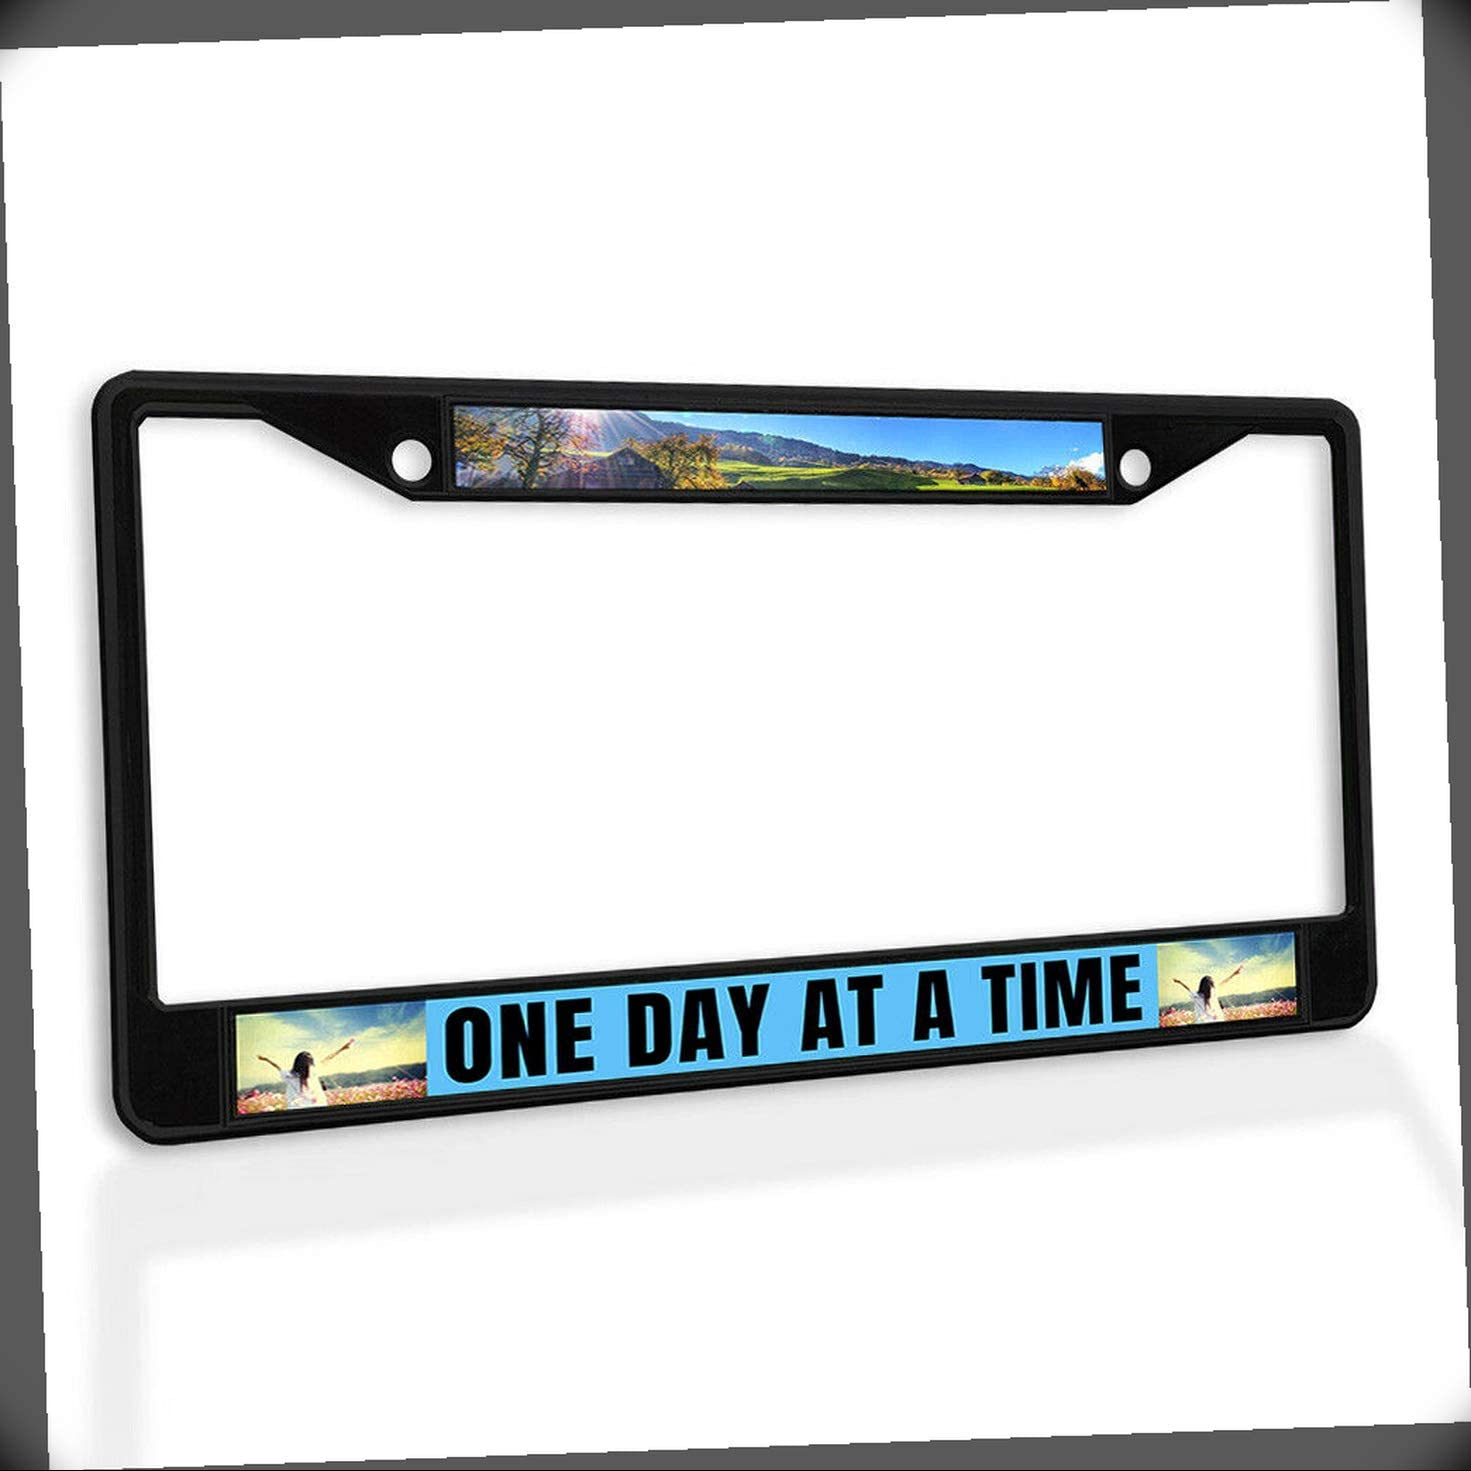 New License Plate High quality Frame 1 Day at T Ranking TOP12 Time Metal A Insert Car